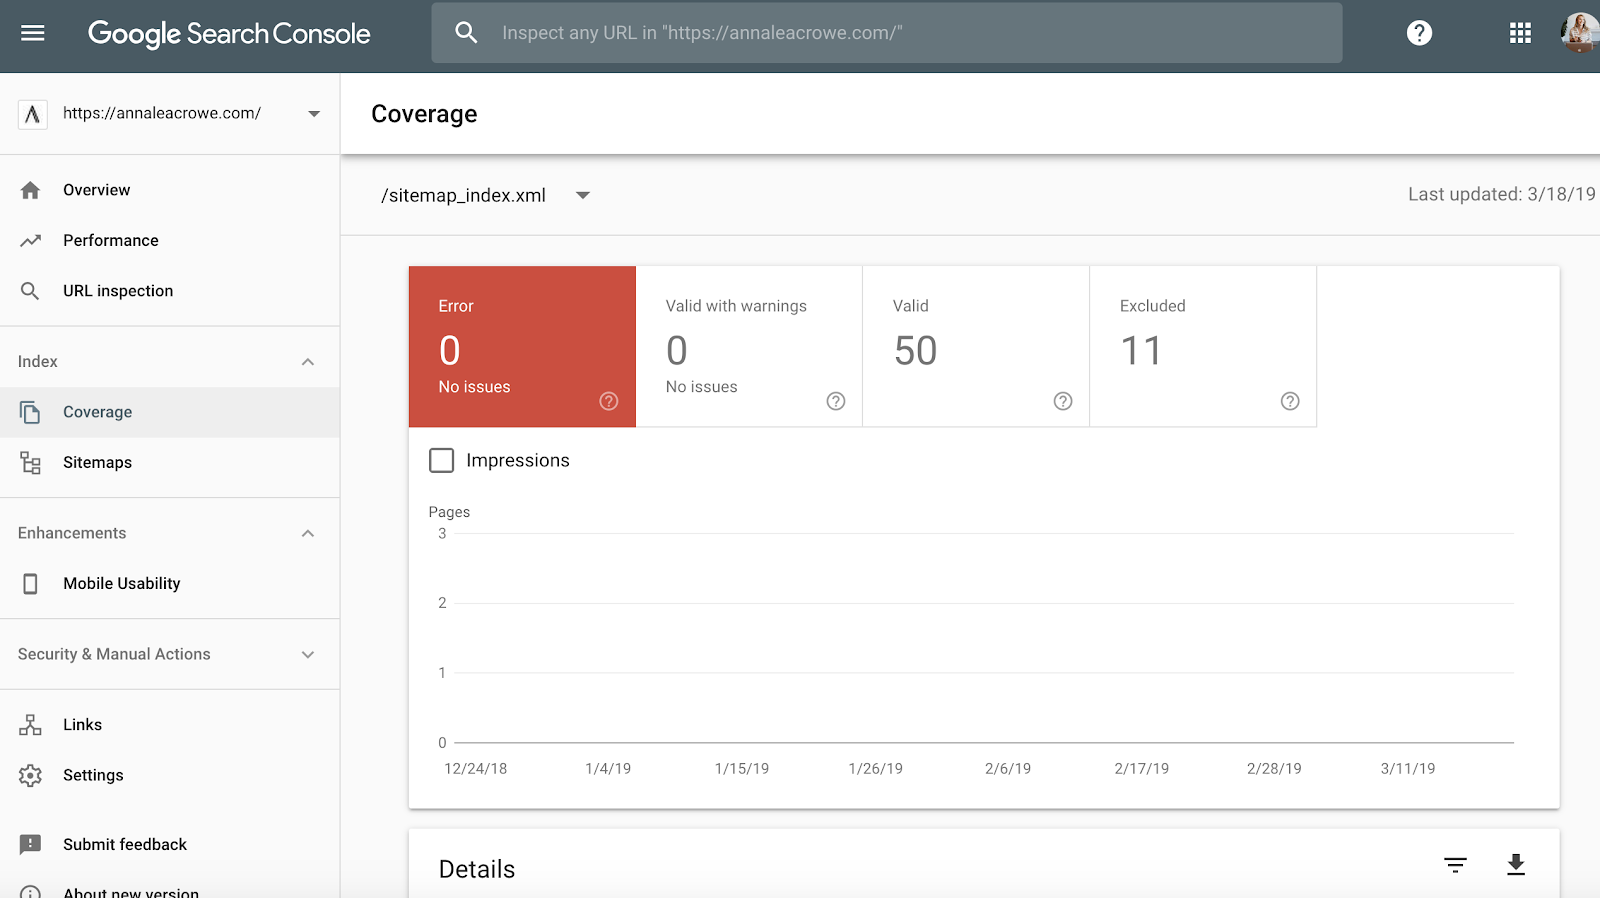 Google Search Console - Index - Sitemaps